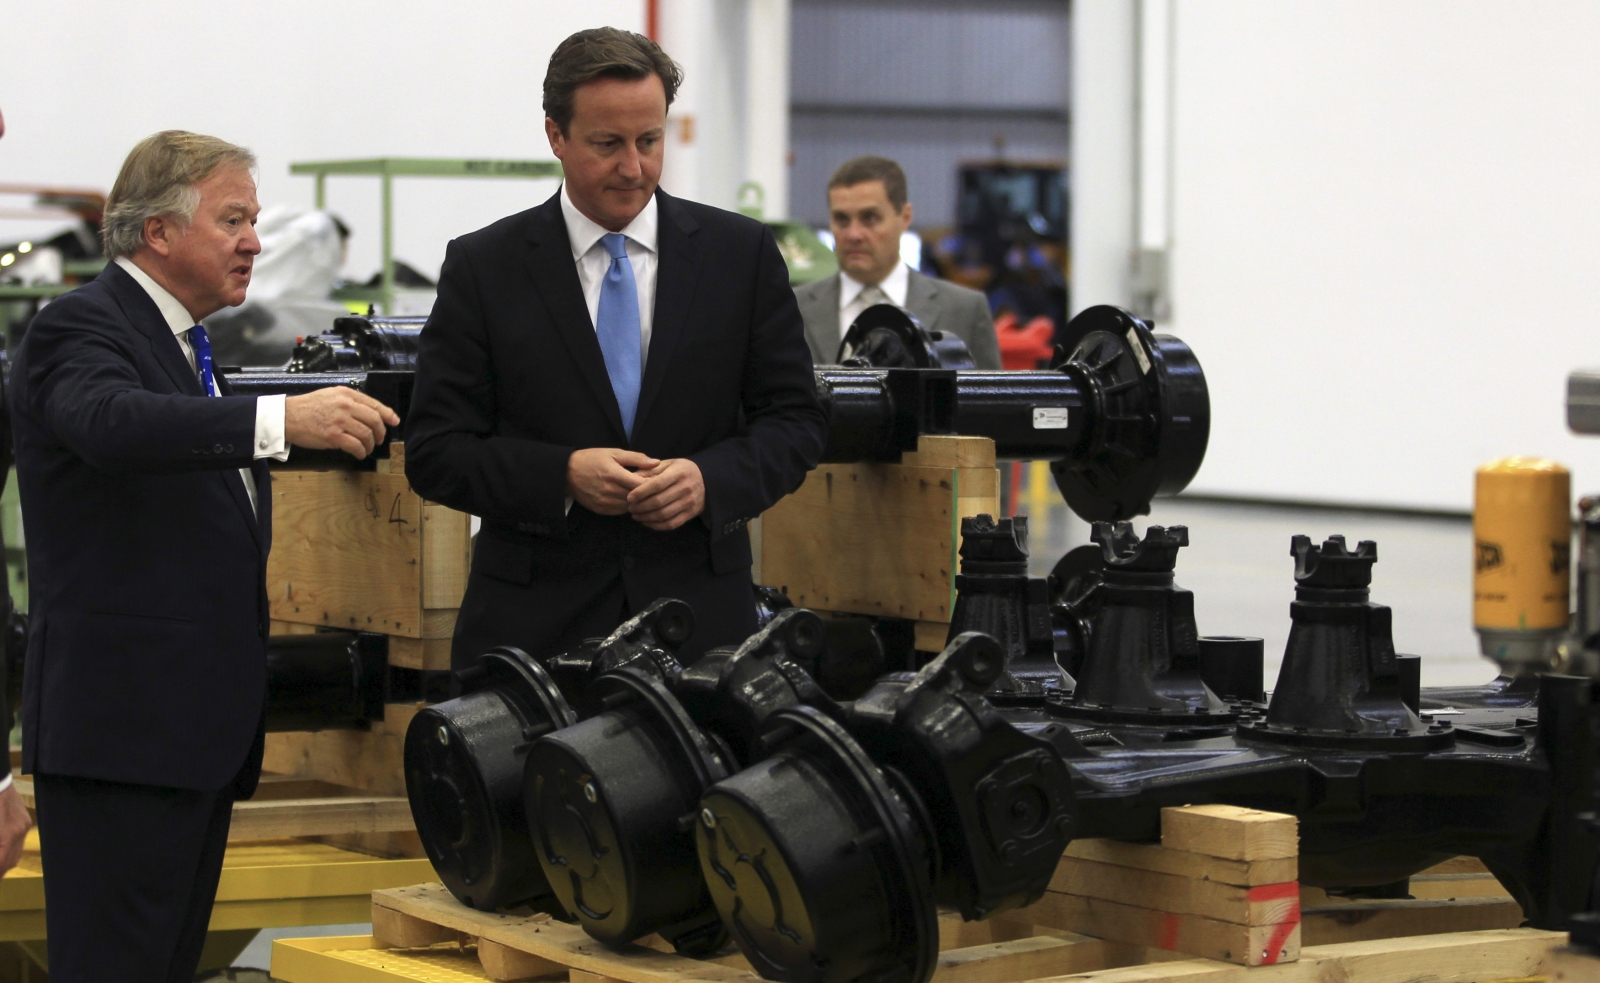 Lord Bamford and David Cameron